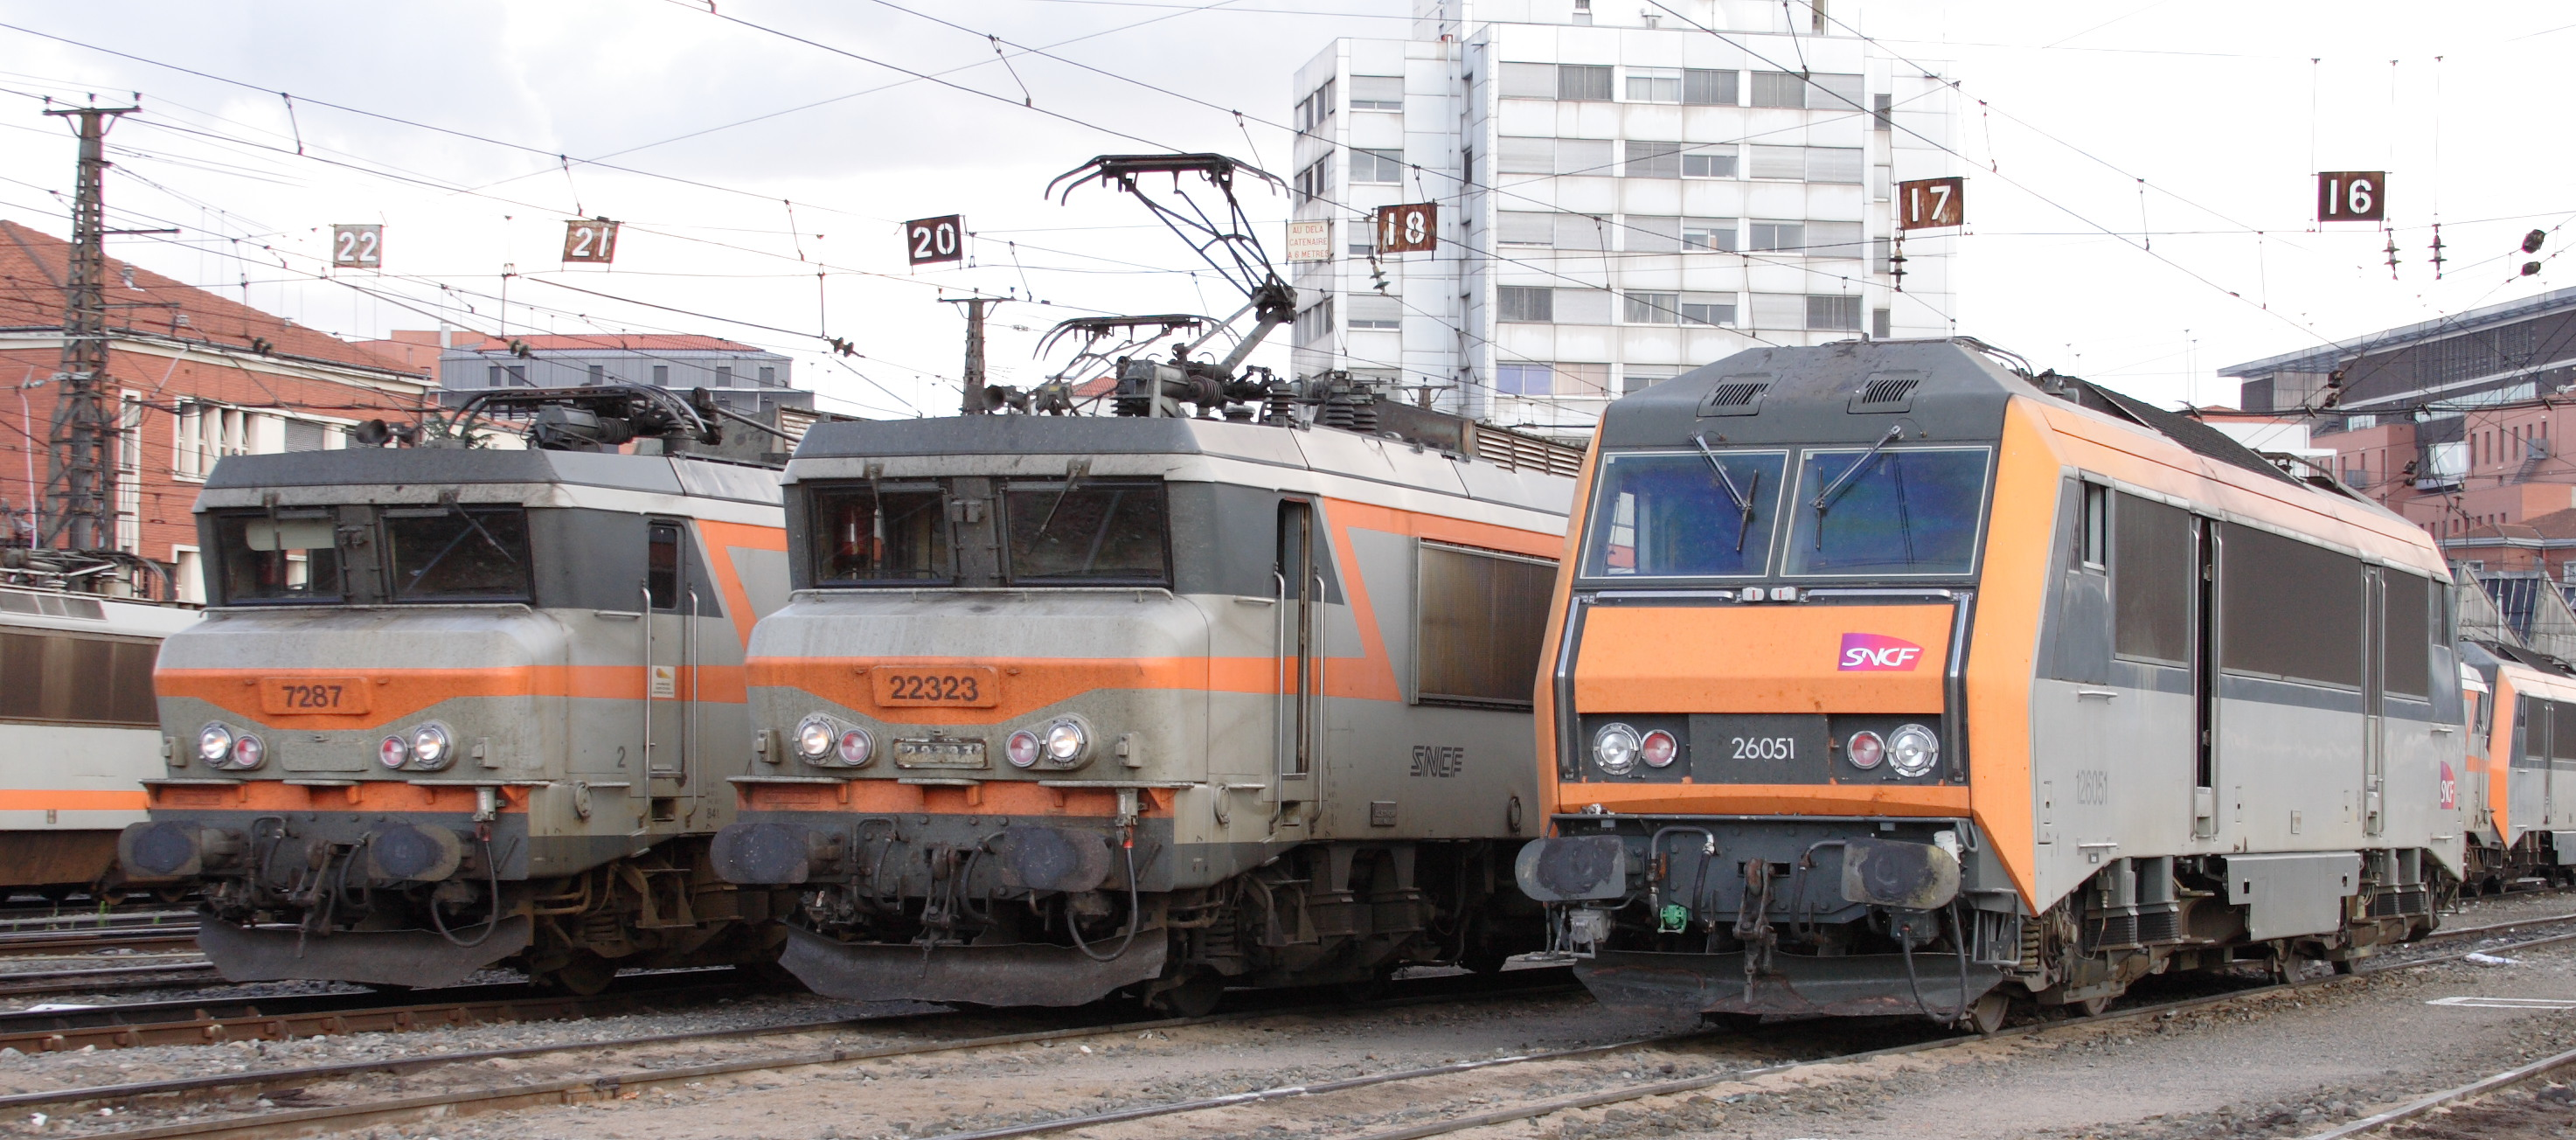 Chasse neige ferroviaire for Ter toulouse